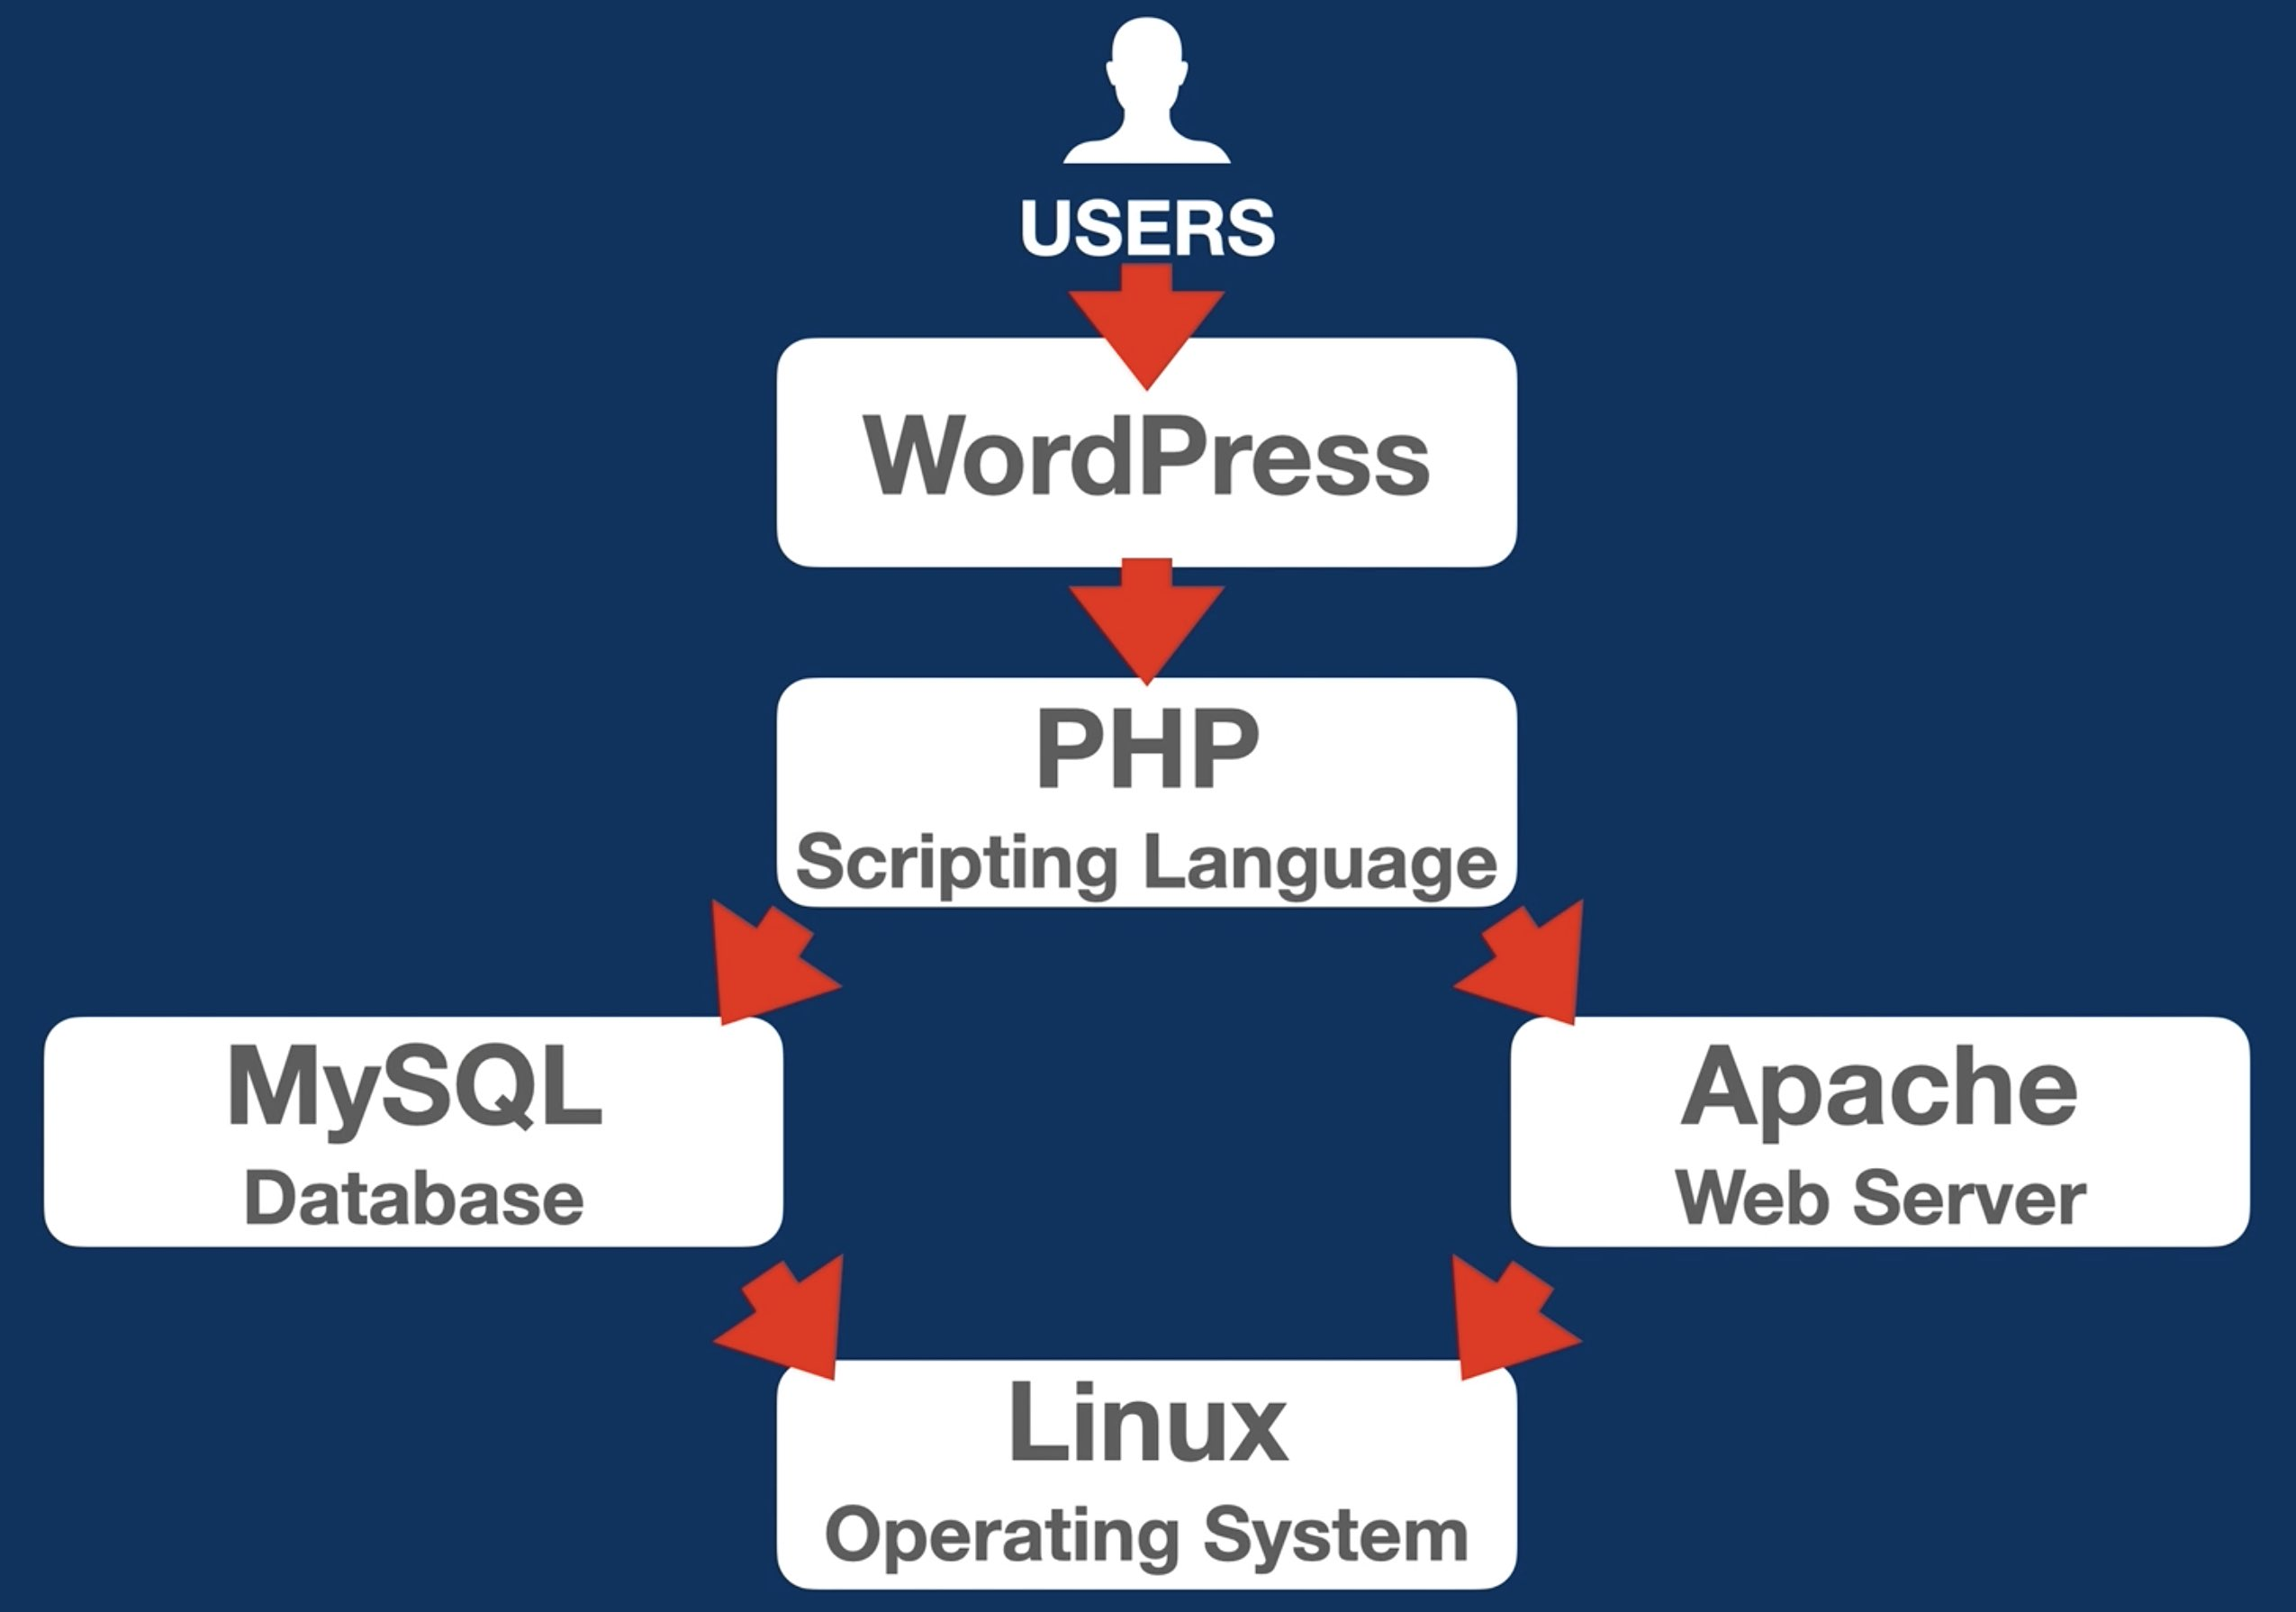 WordPress usually rely on Linux, Apache, MySQL, PHP and this is where DigitalOcean can help.